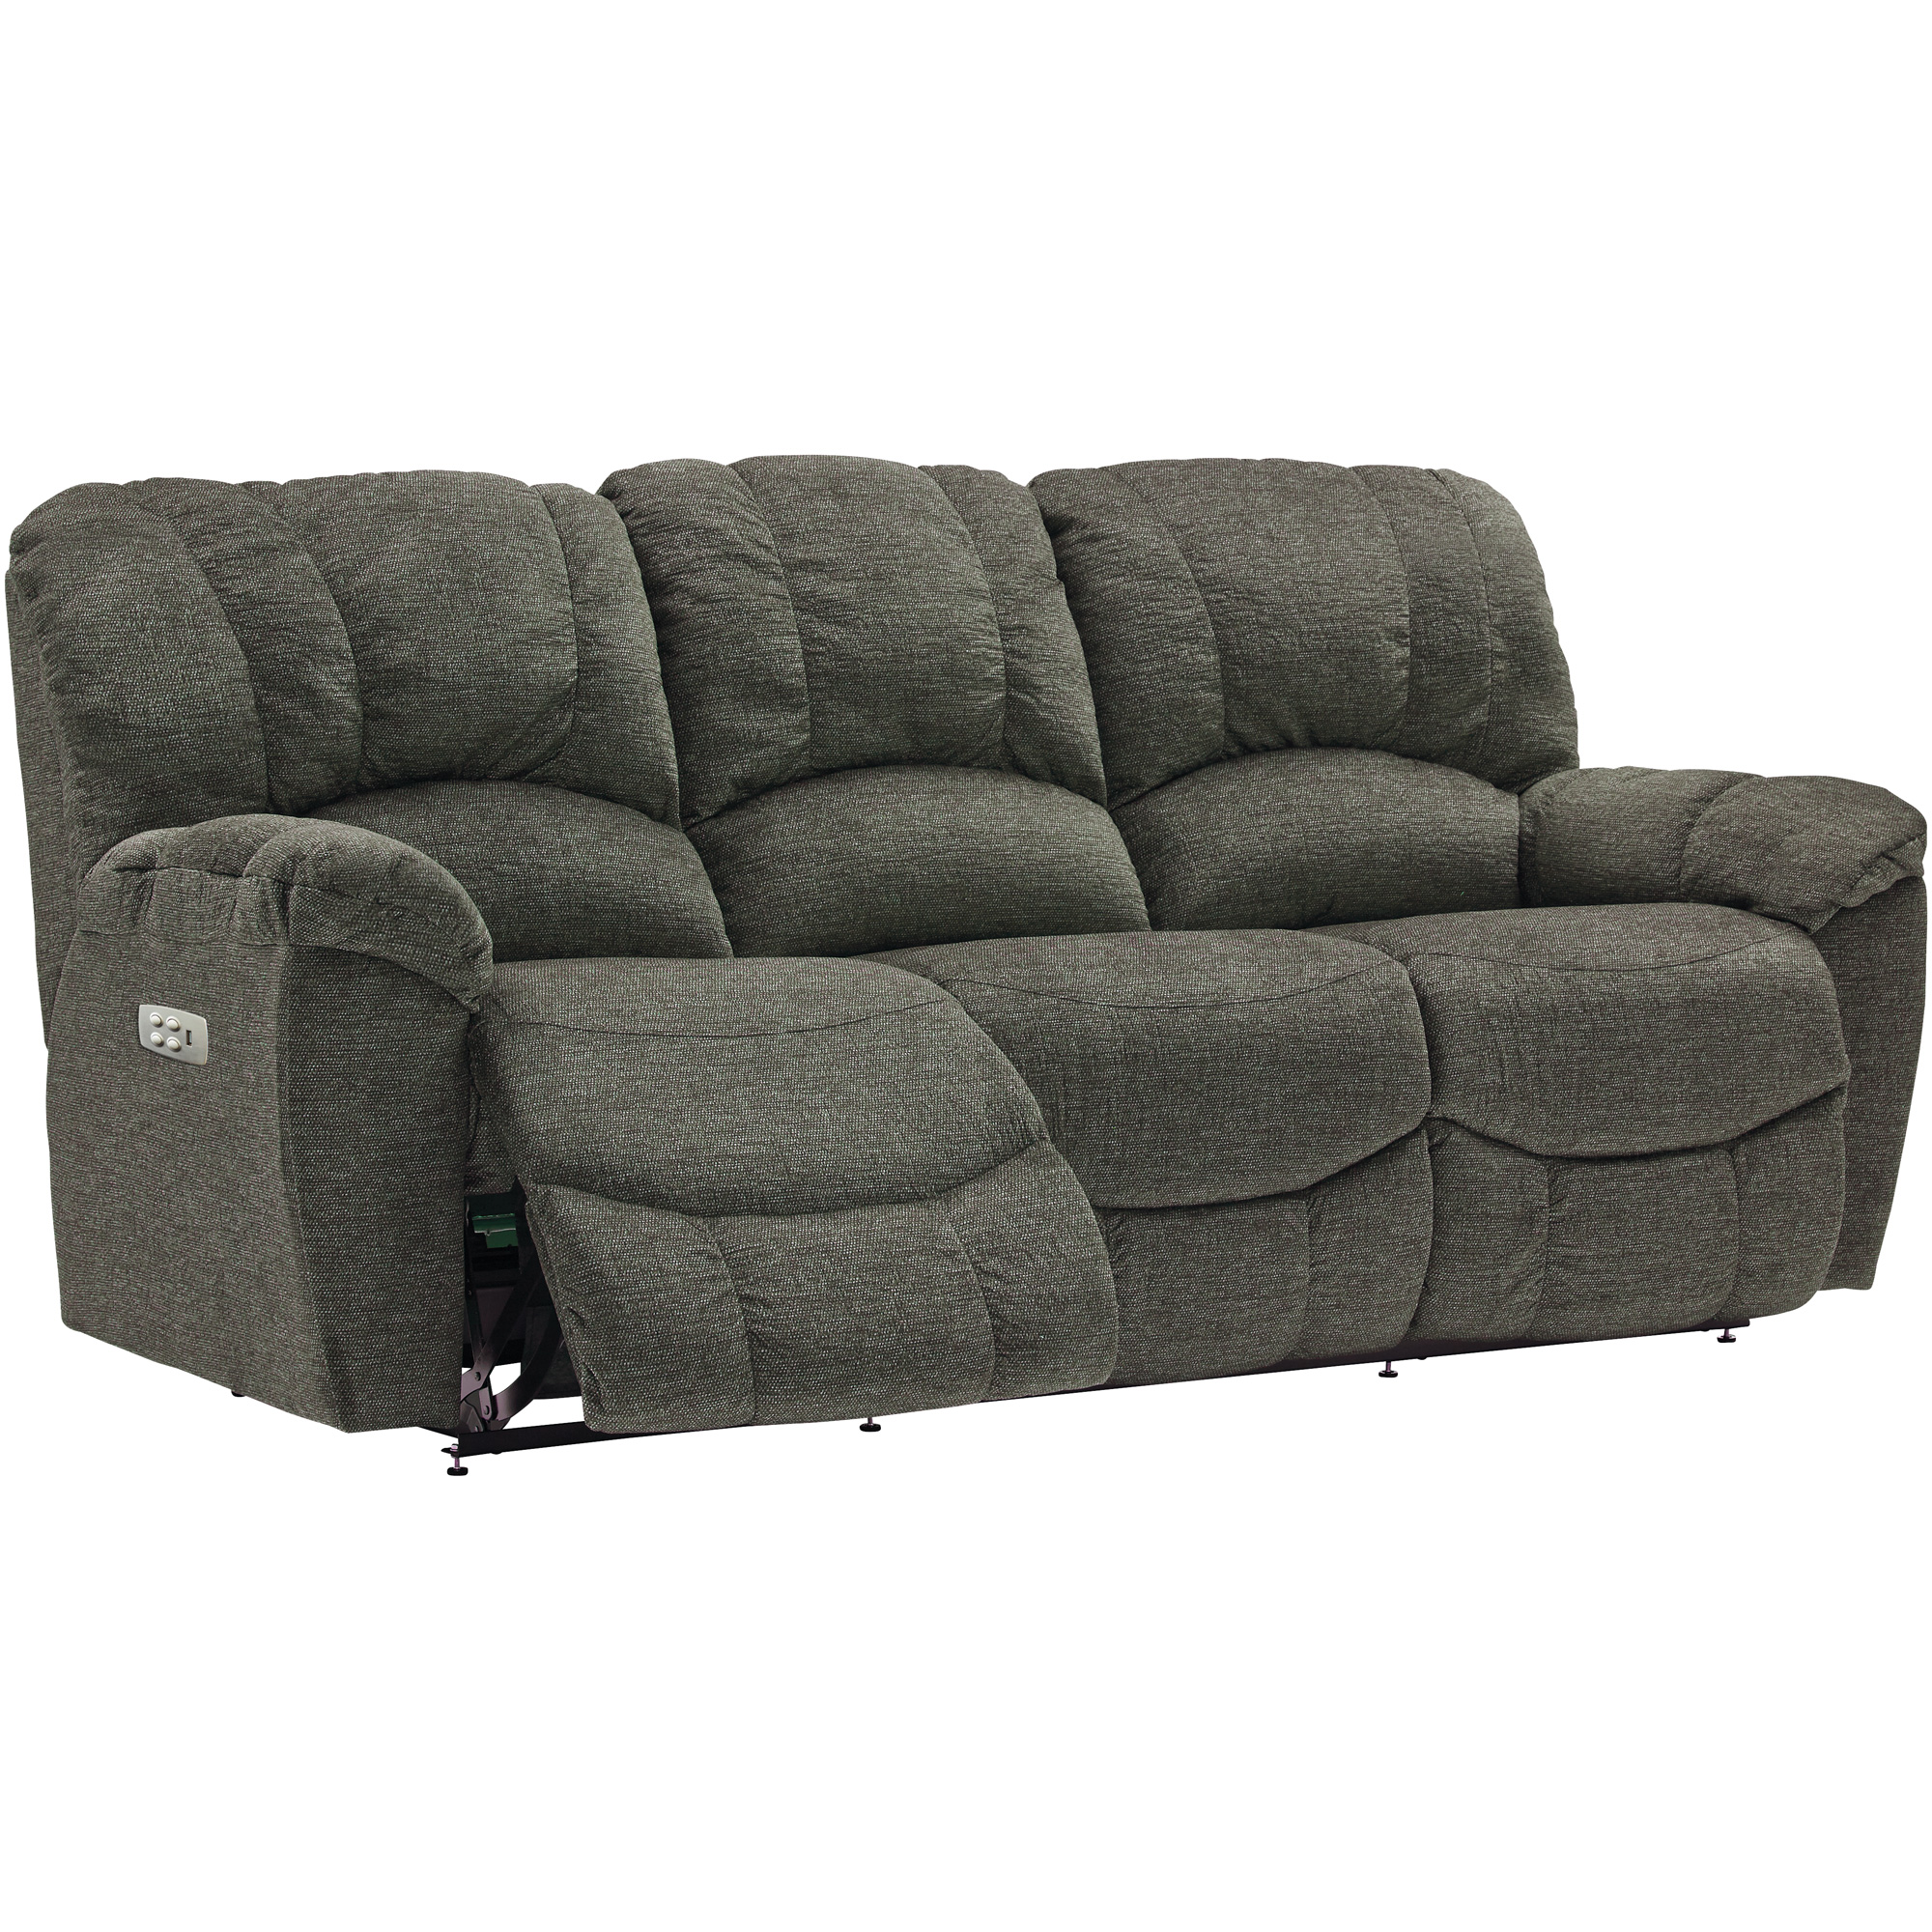 La-Z-Boy | Hayes Sable Power Plus Reclining Sofa